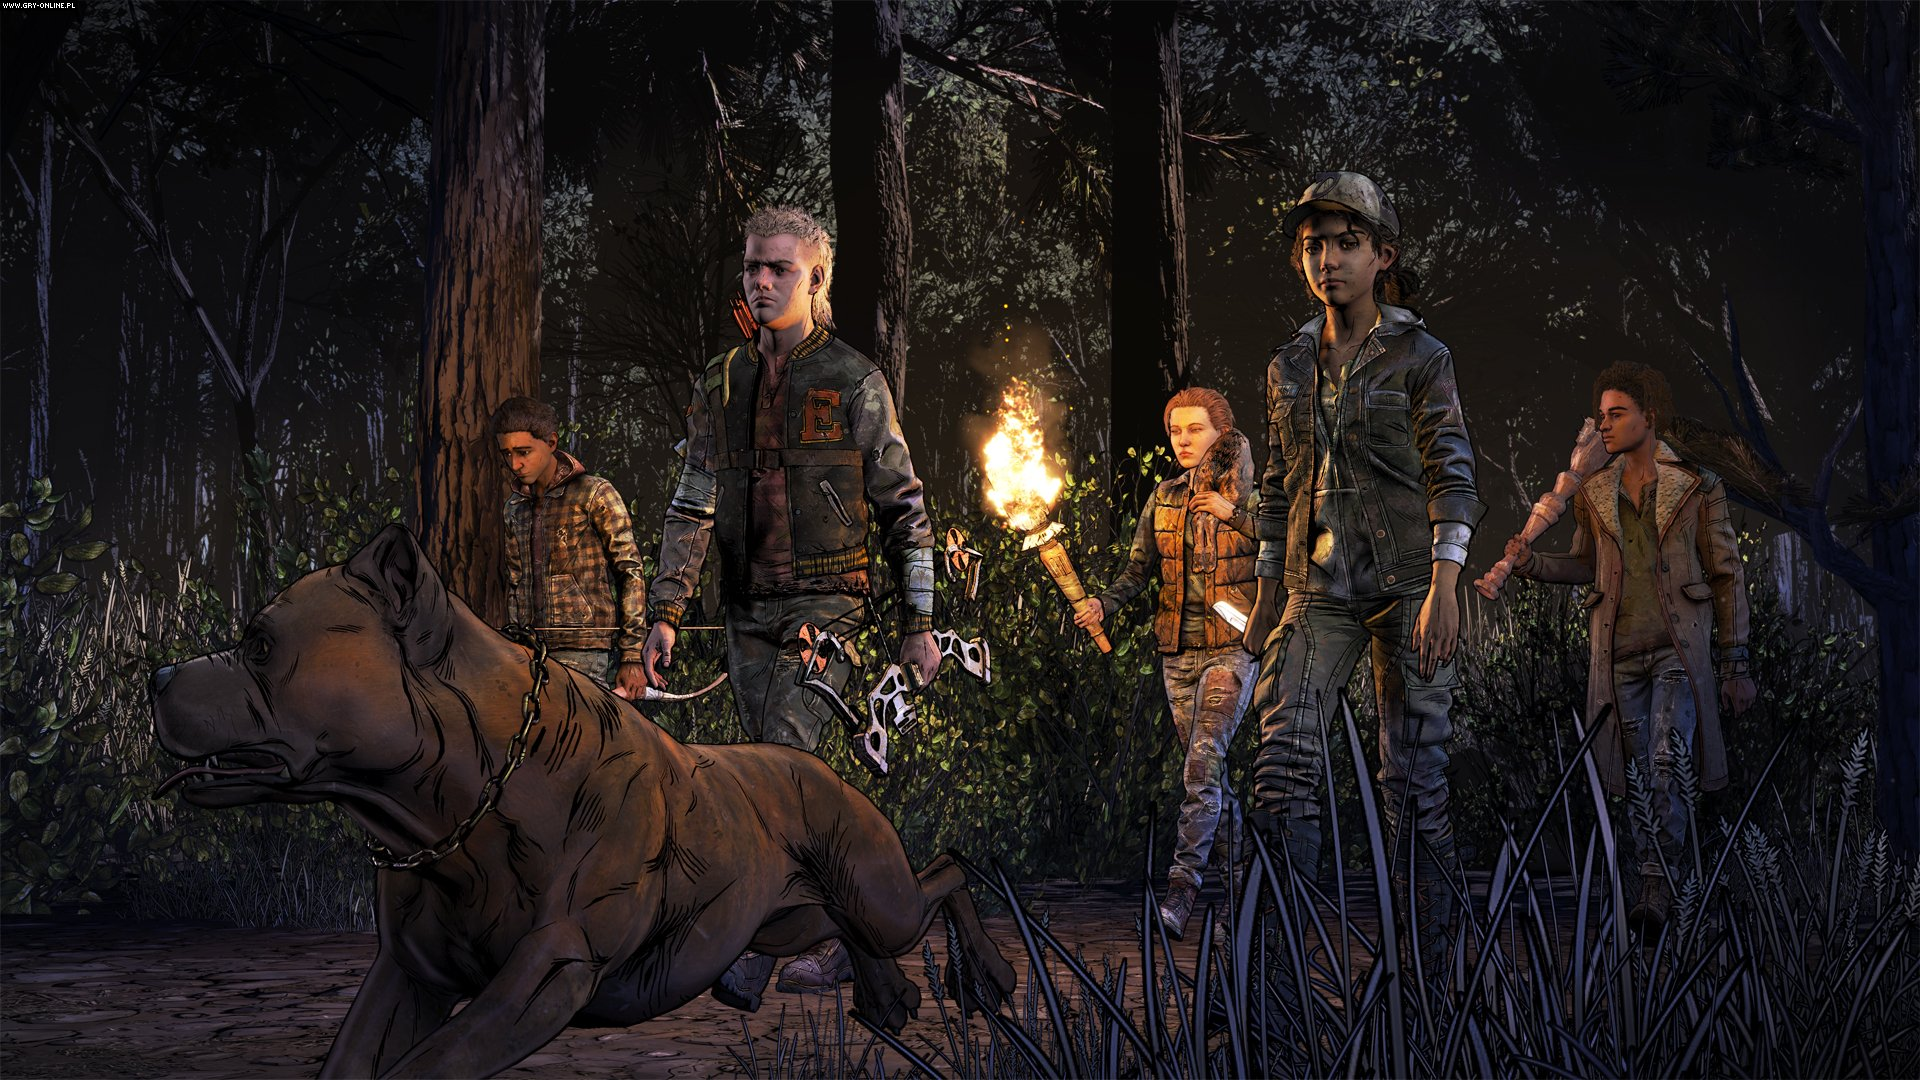 The Walking Dead: The Final Season PC, PS4, XONE, AND, iOS, Switch Gry Screen 24/29, Telltale Games